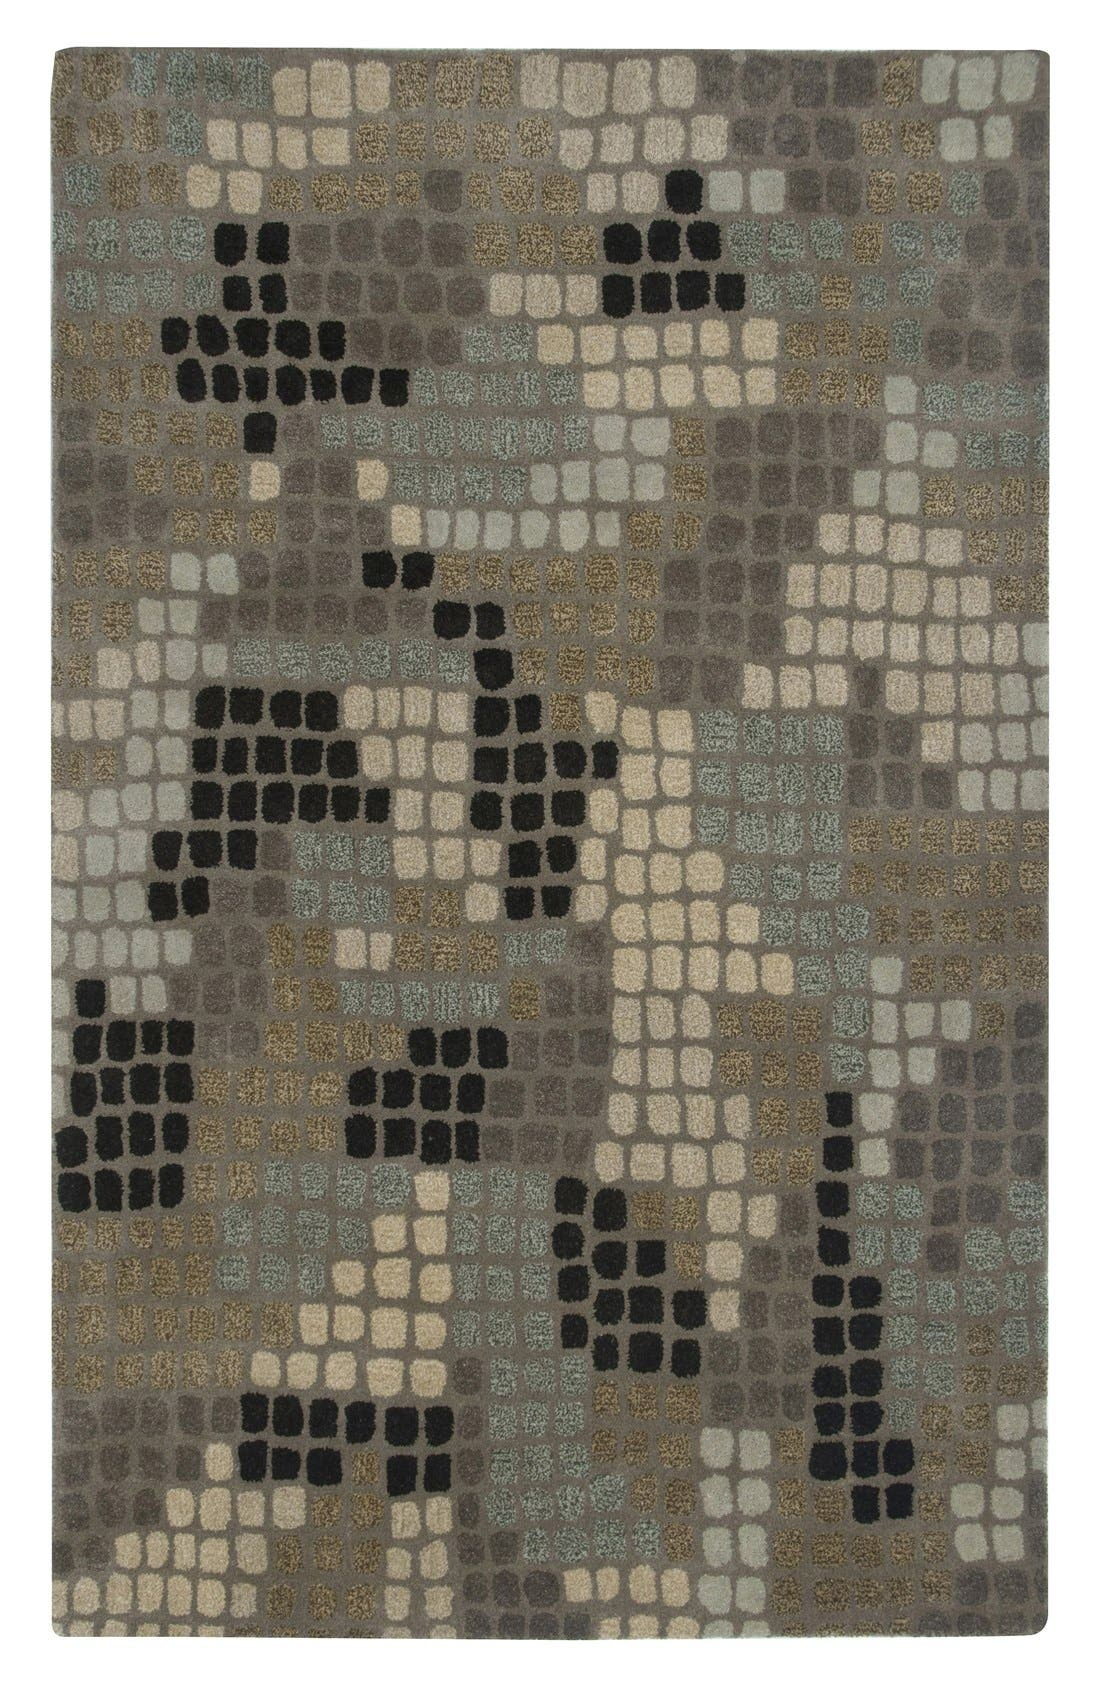 'Pandora Collection' Hand Tufted Wool Blend Area Rug,                             Main thumbnail 1, color,